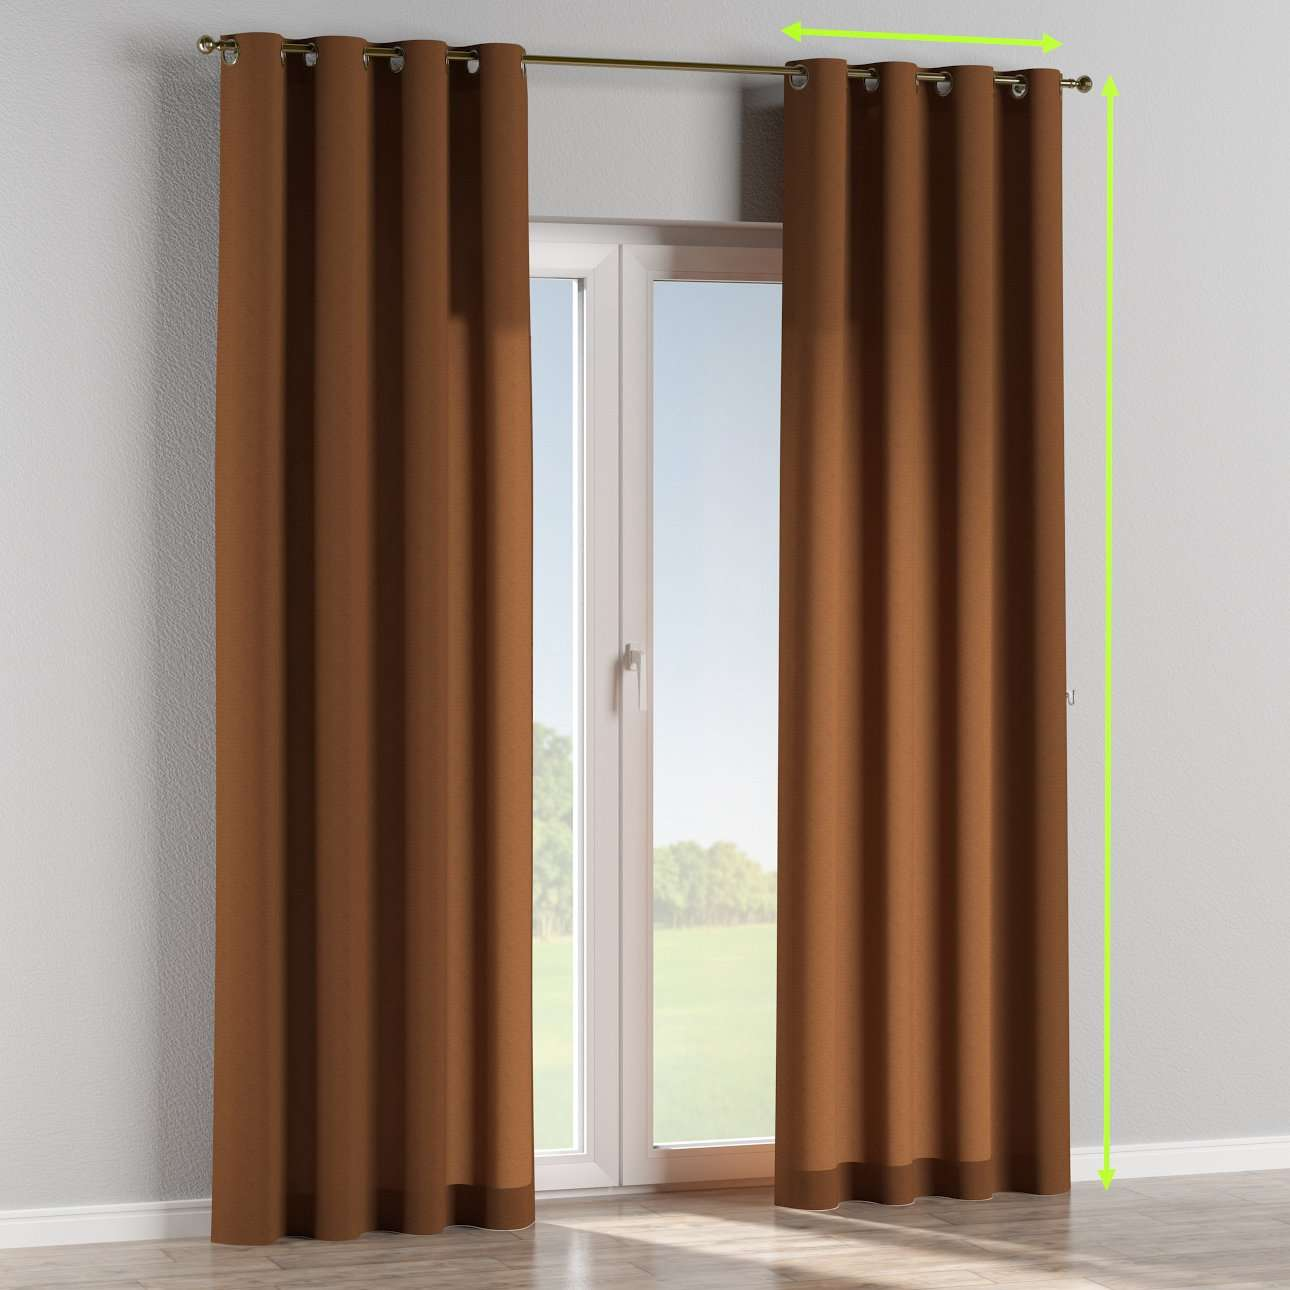 Eyelet lined curtains in collection Jupiter, fabric: 127-88